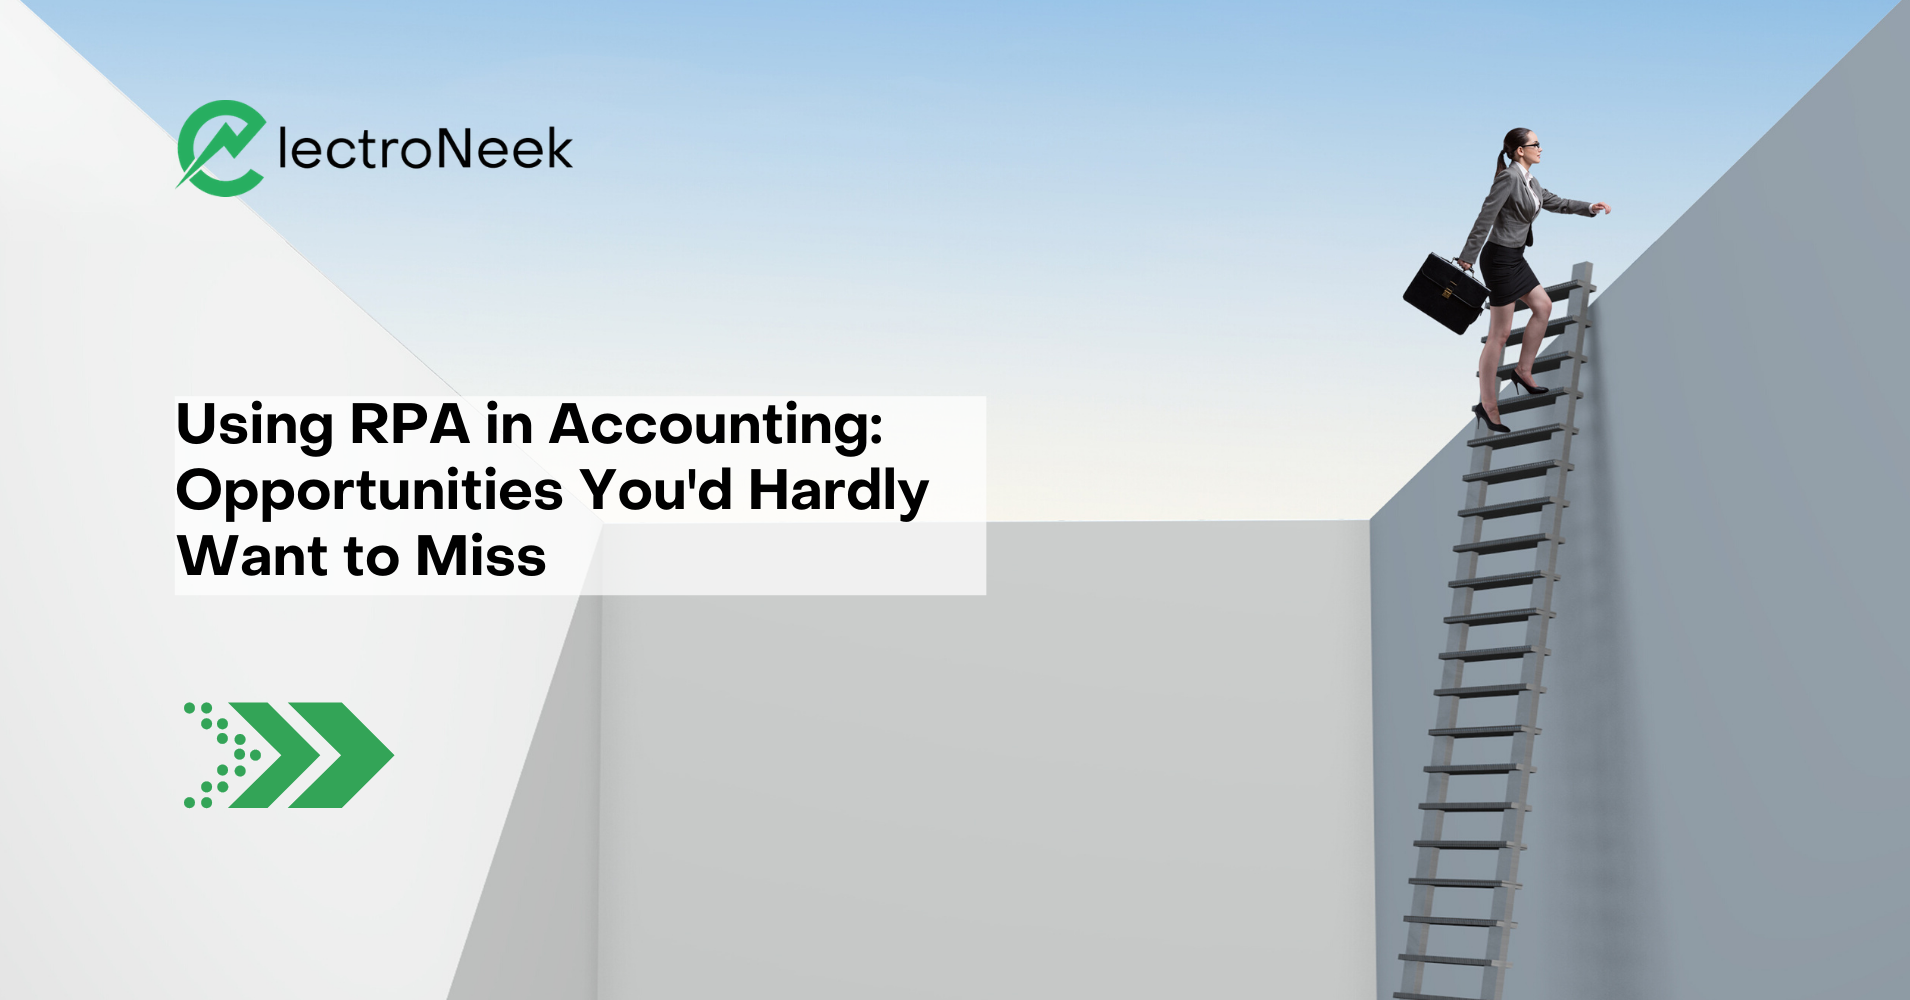 Using RPA in Accounting: Opportunities You'd Hardly Want to Miss